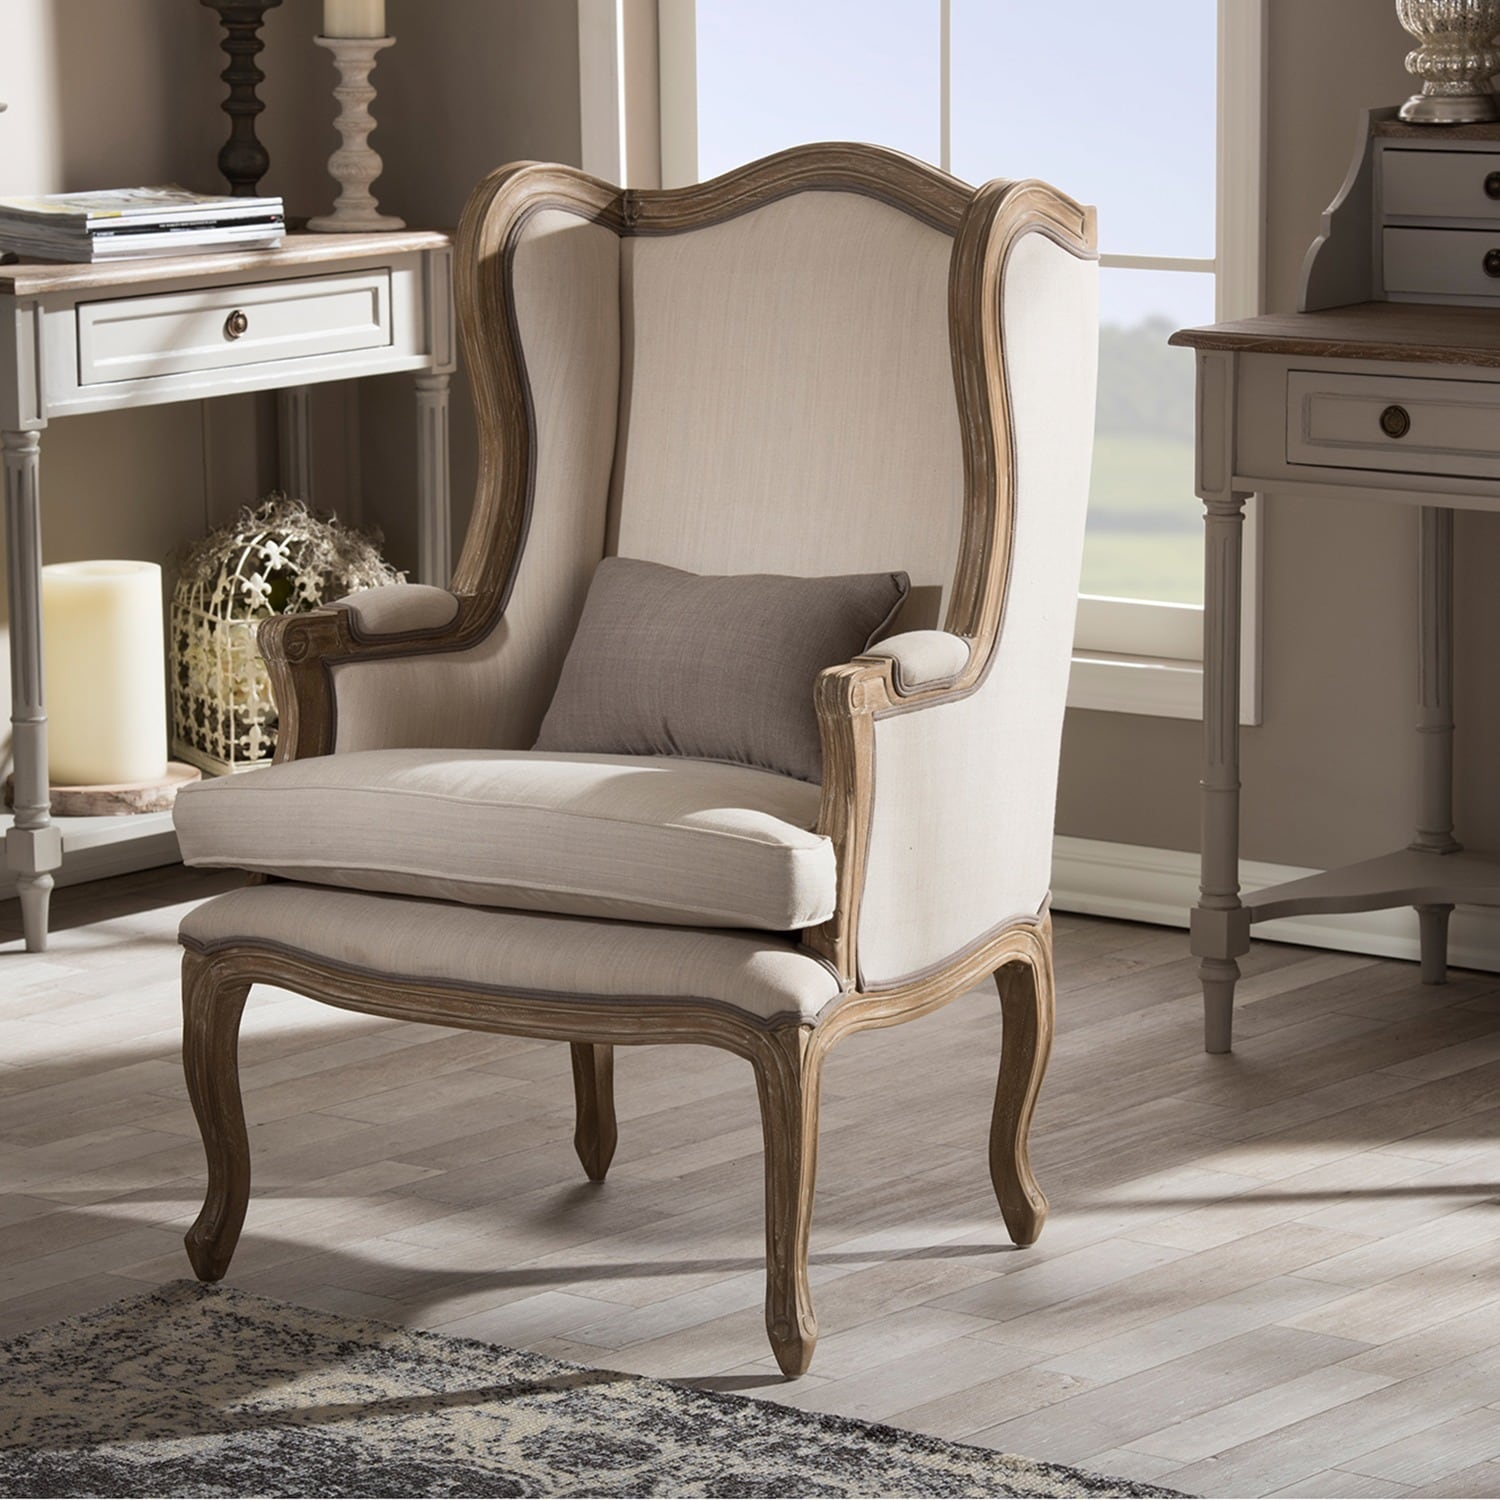 Baxton studio oreille french provincial style white wash distressed beige upholstered armchair